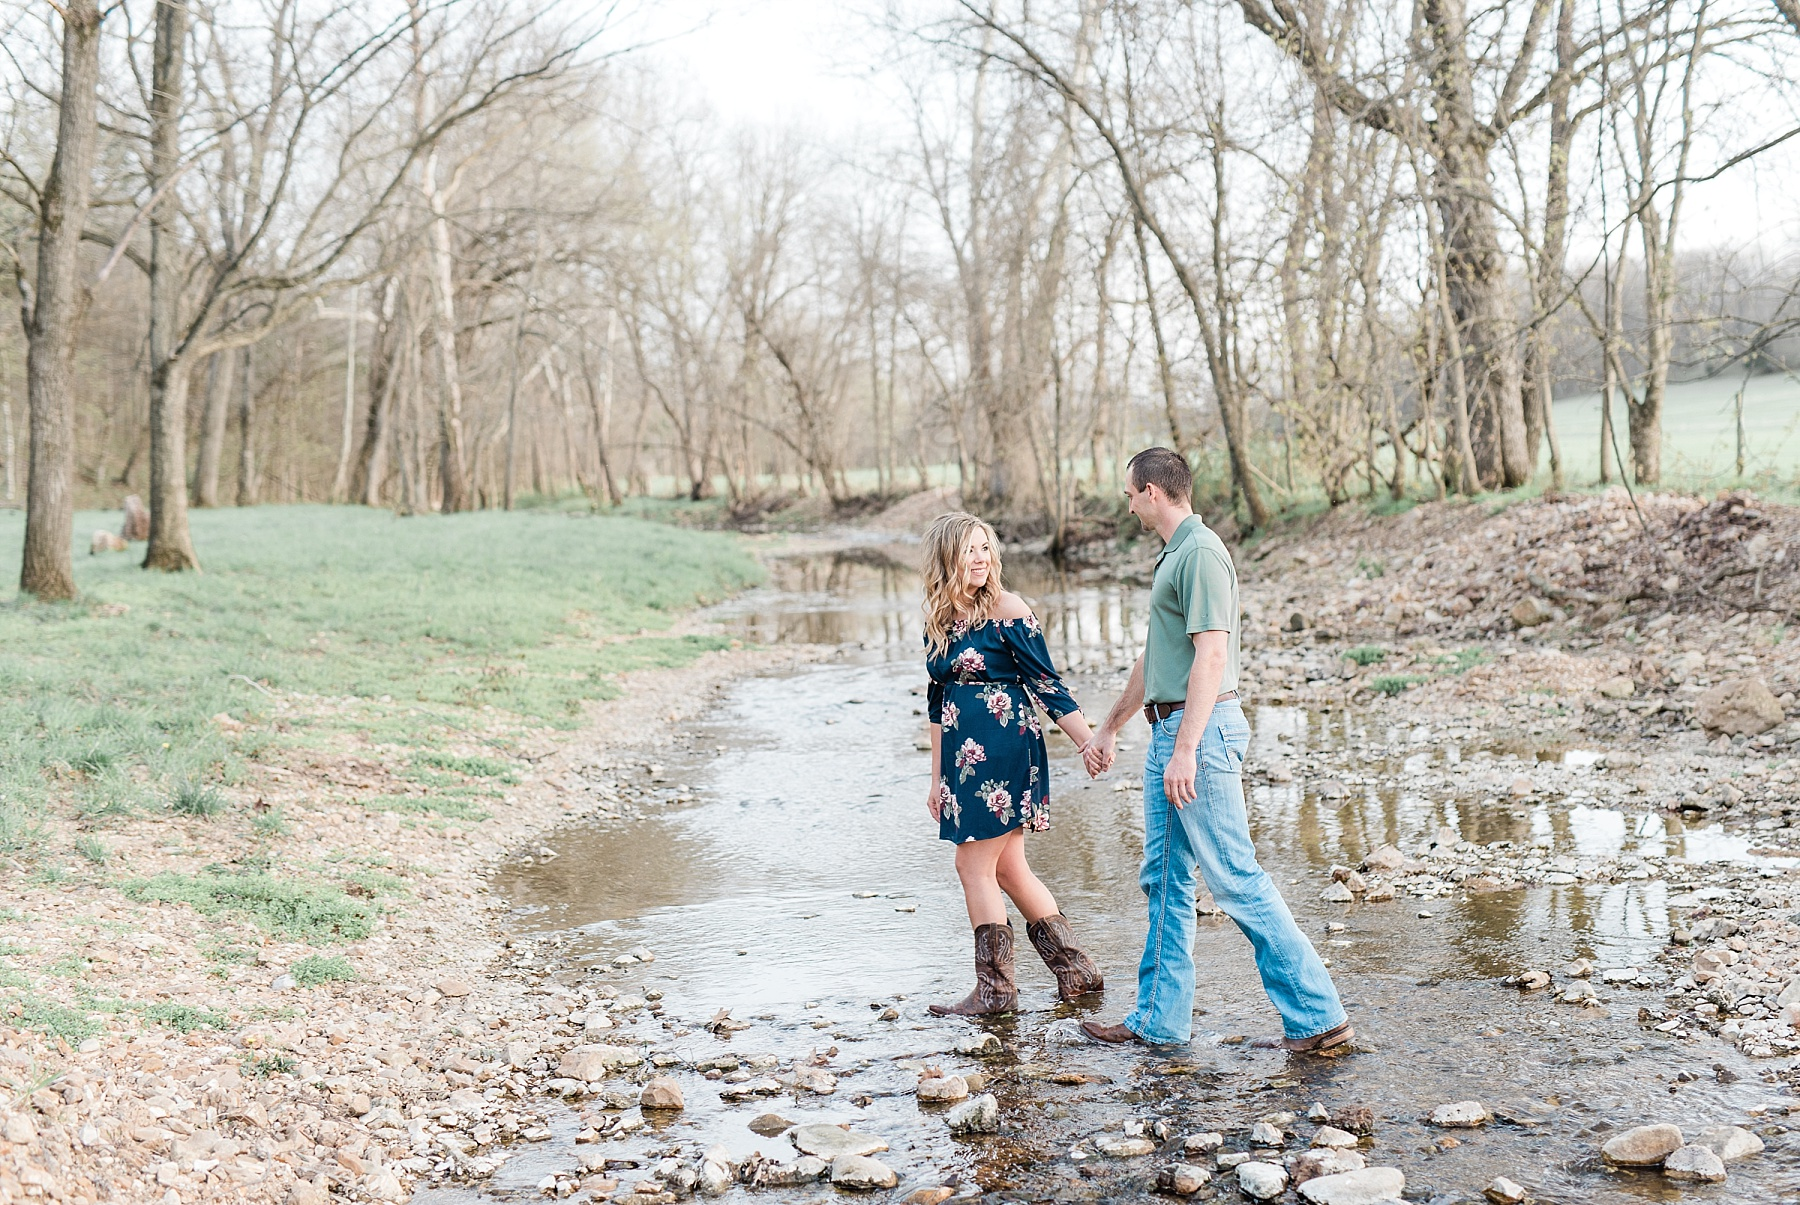 Spring Sunset Farm Engagement Session on Family Farm in Missouri Midwest by Kelsi Kliethermes Photography_0008.jpg